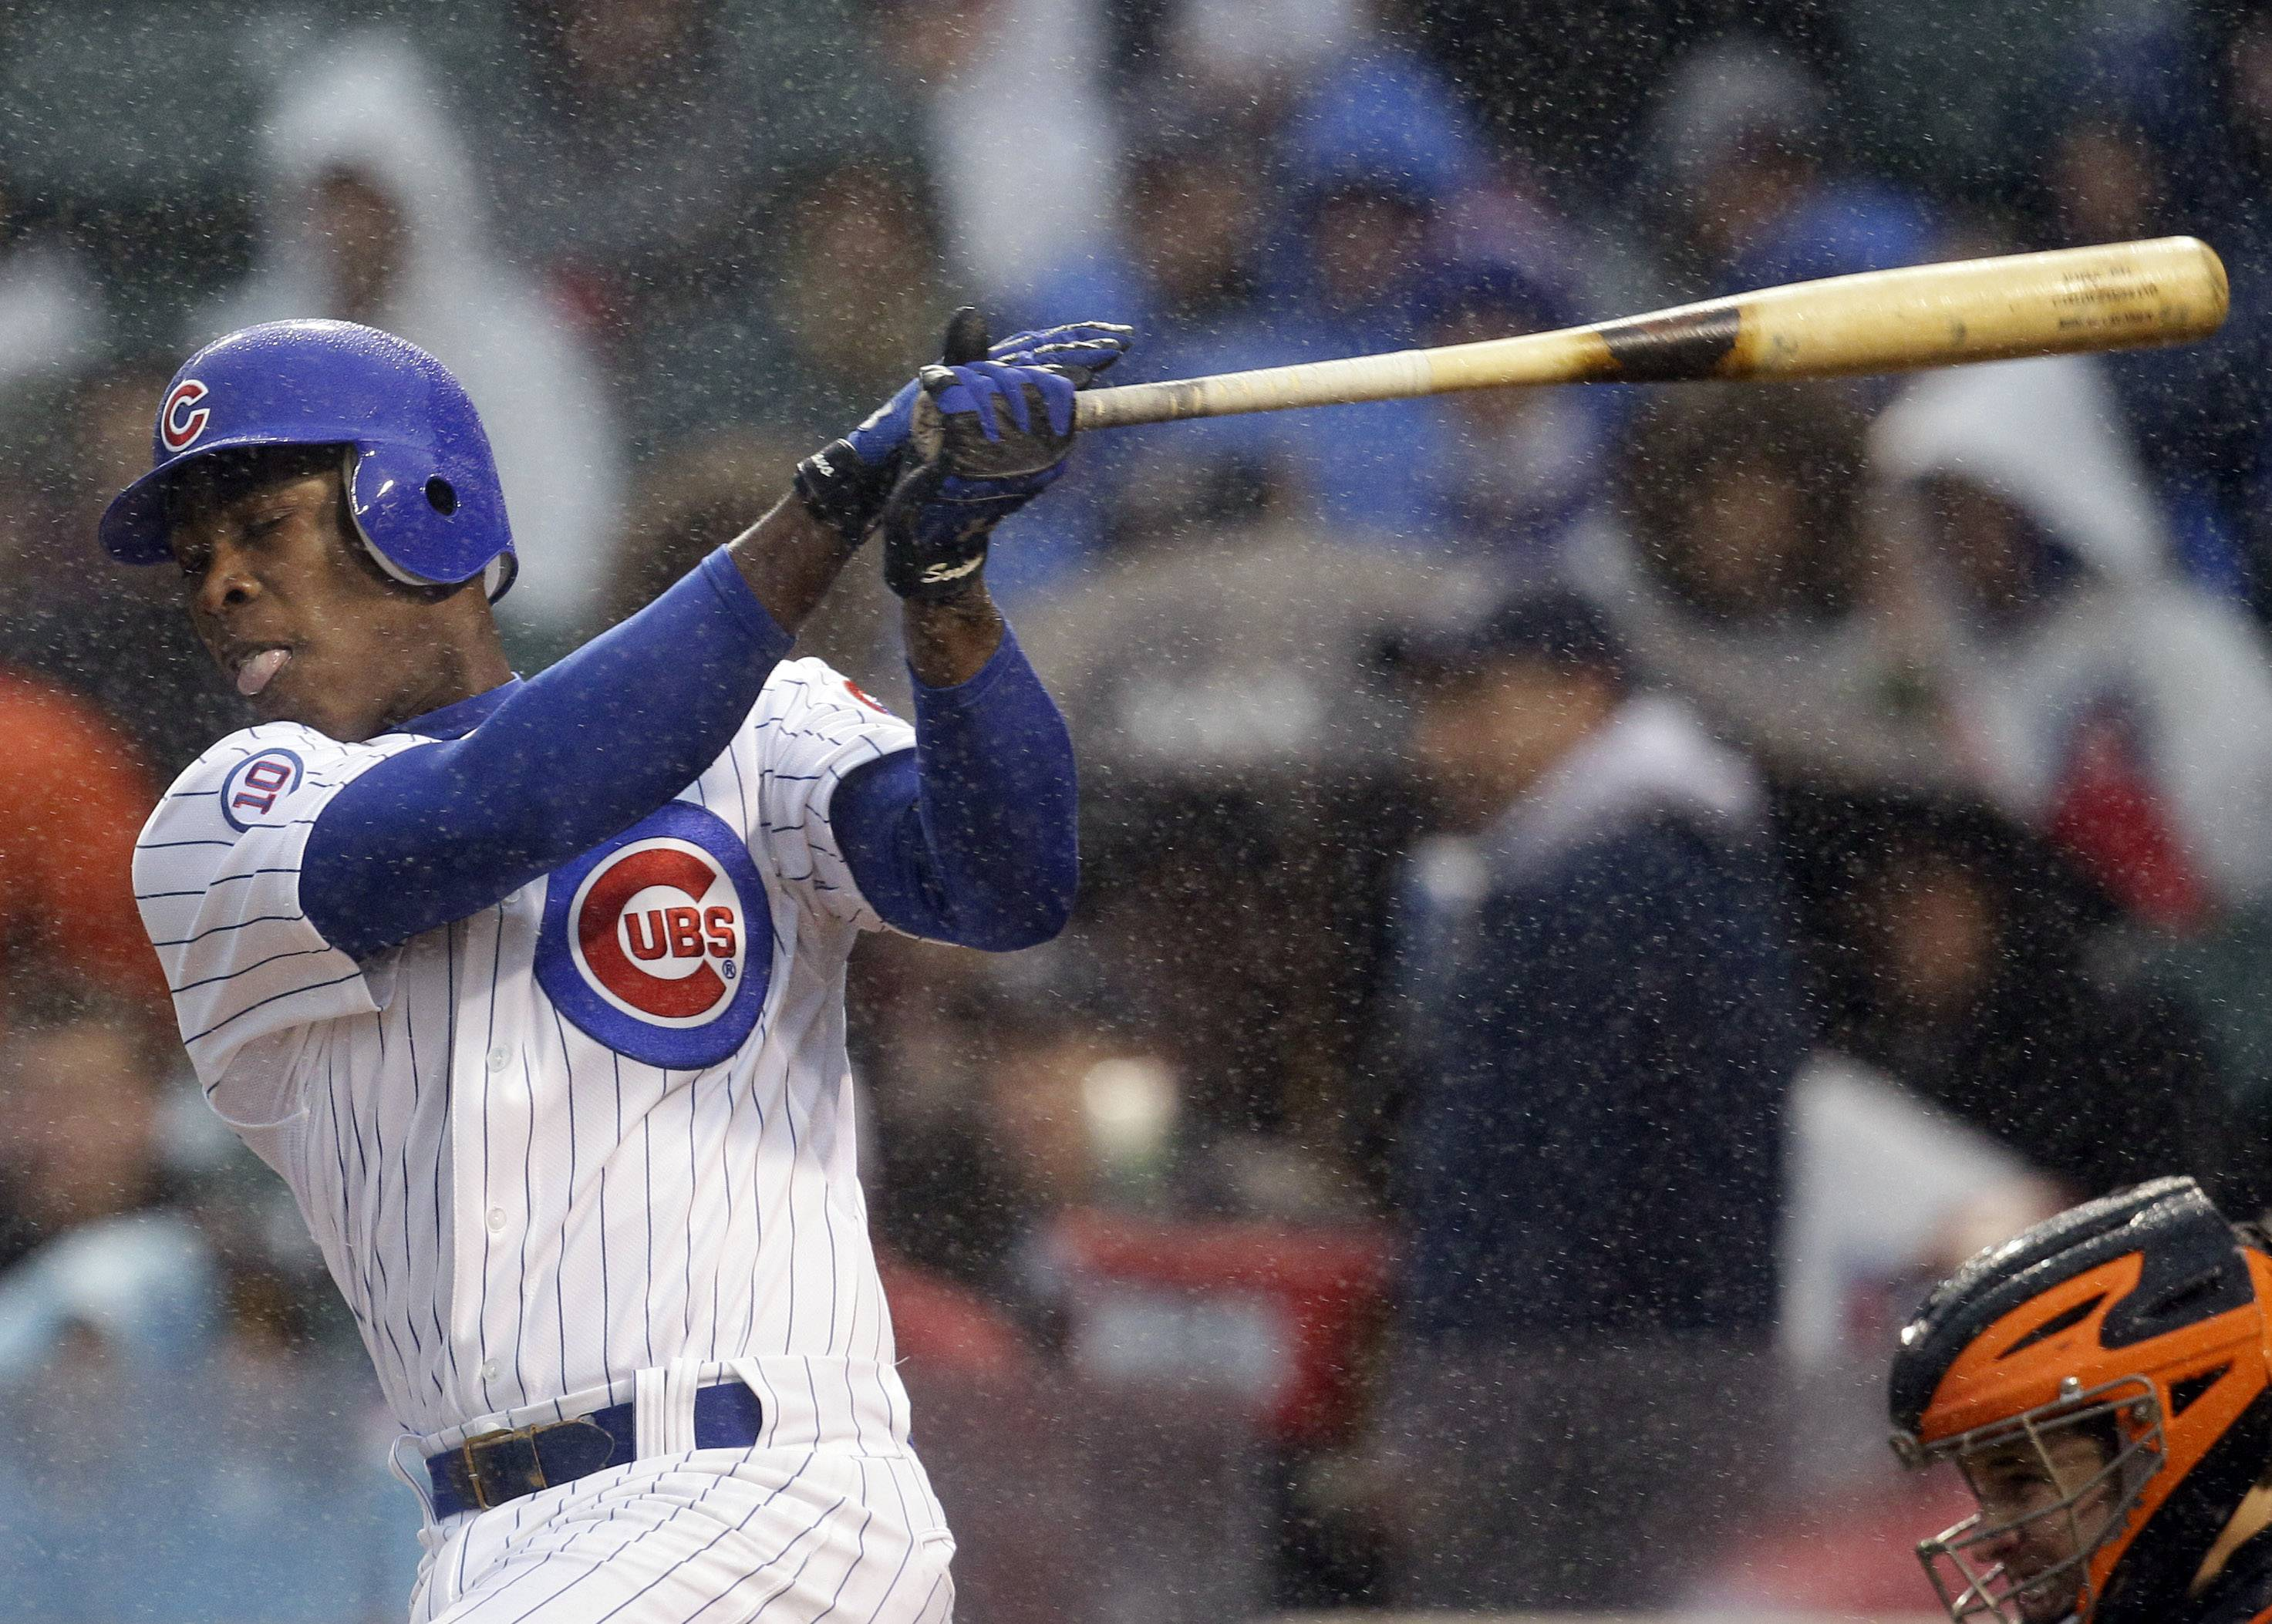 Giants top Cubs 3-0 in rain-shortened game